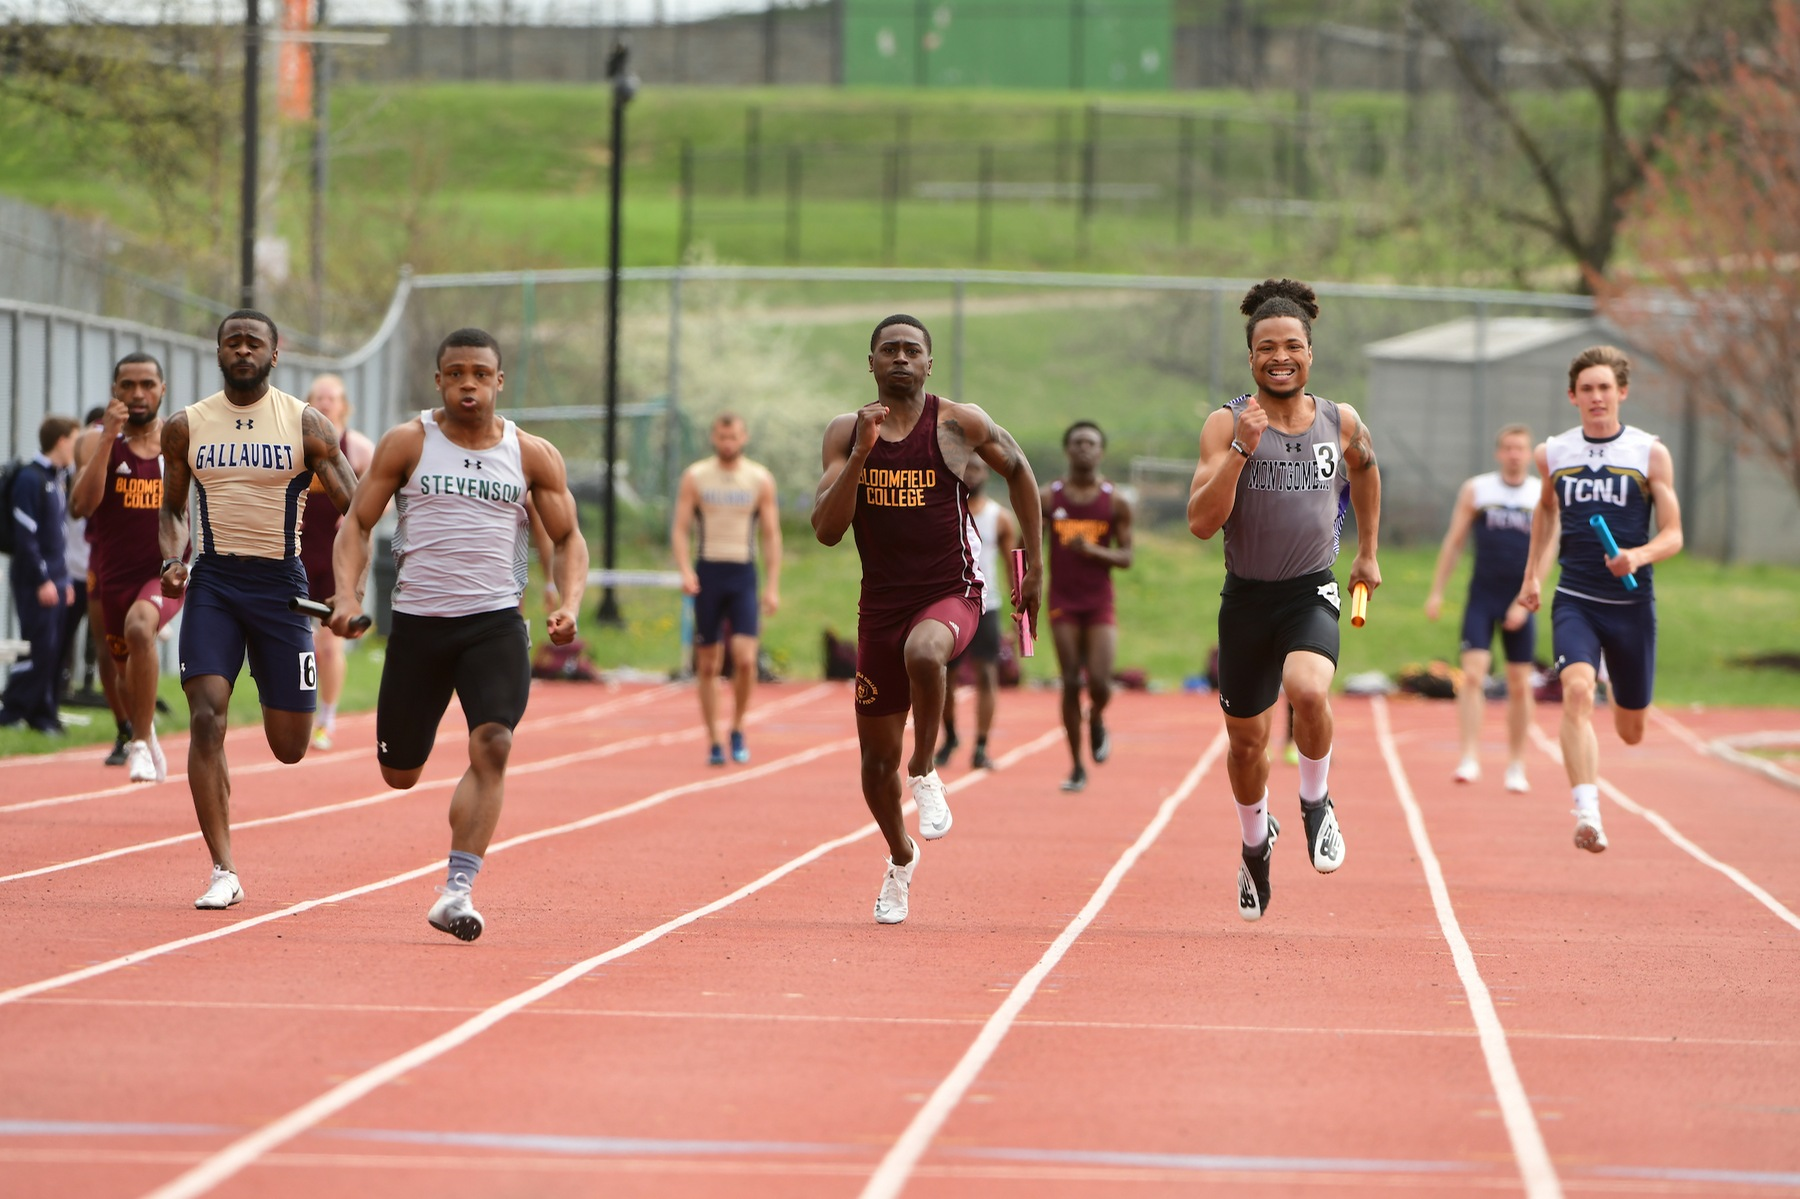 Davis Sets Personal Best in 100, Places Sixth at Morgan State Legacy Meet